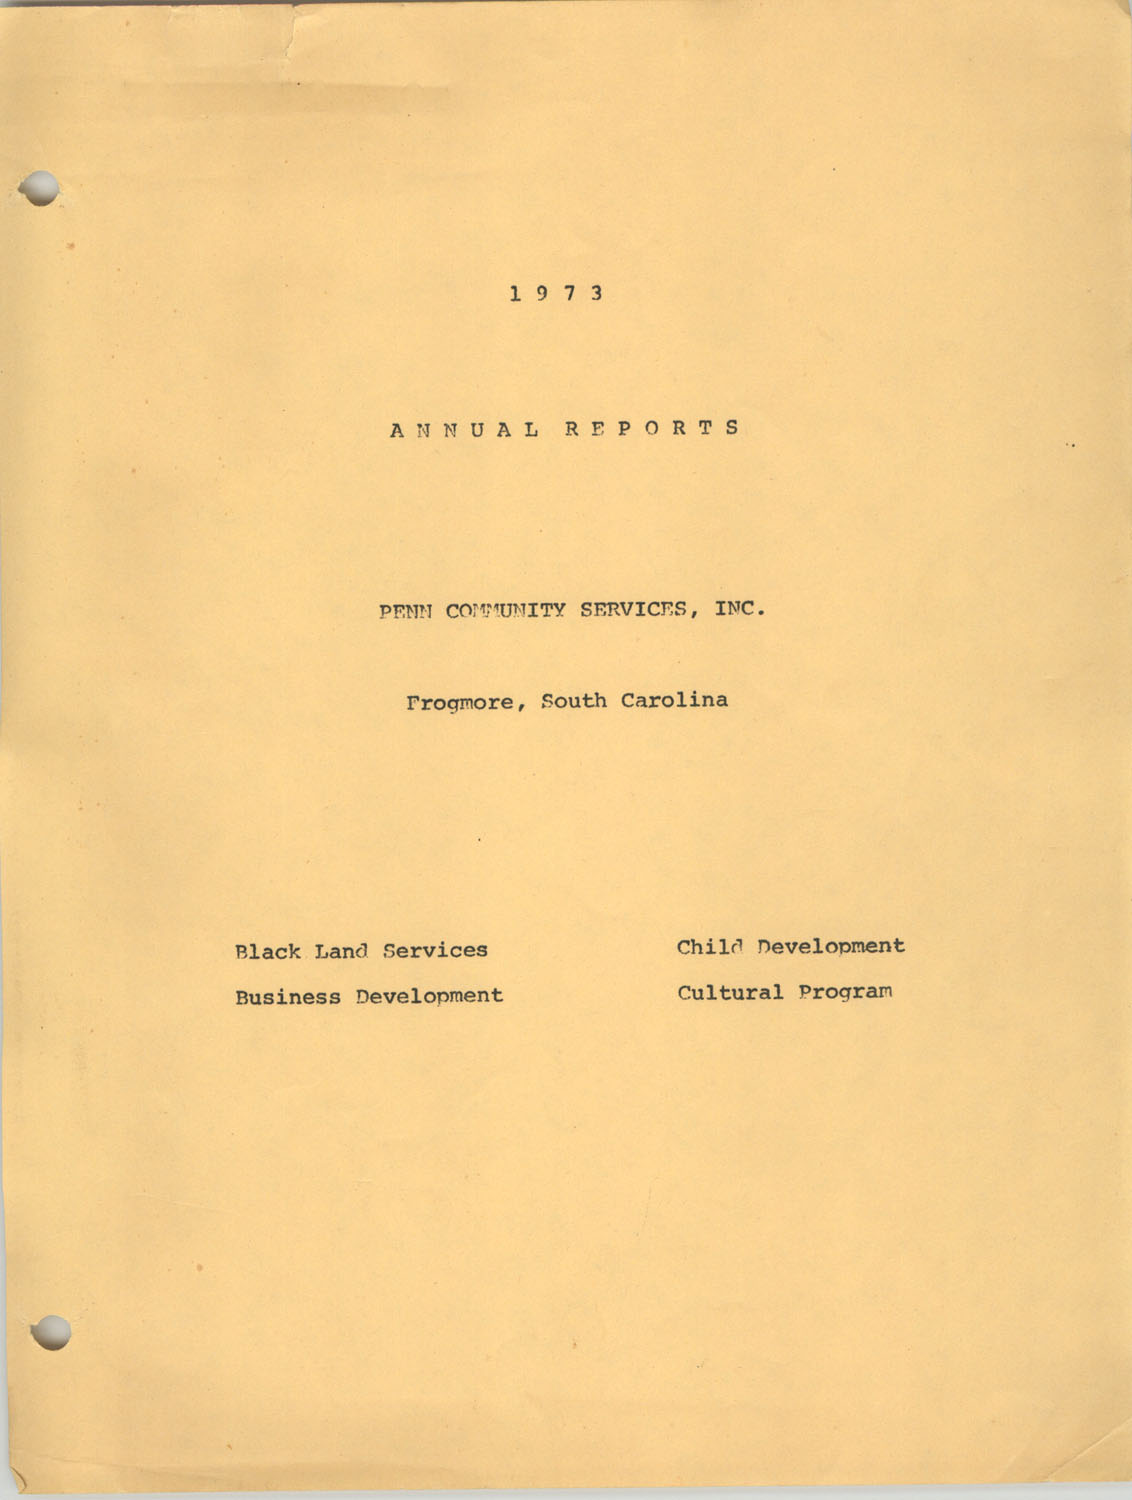 Annual Reports, Penn Community Services, 1973